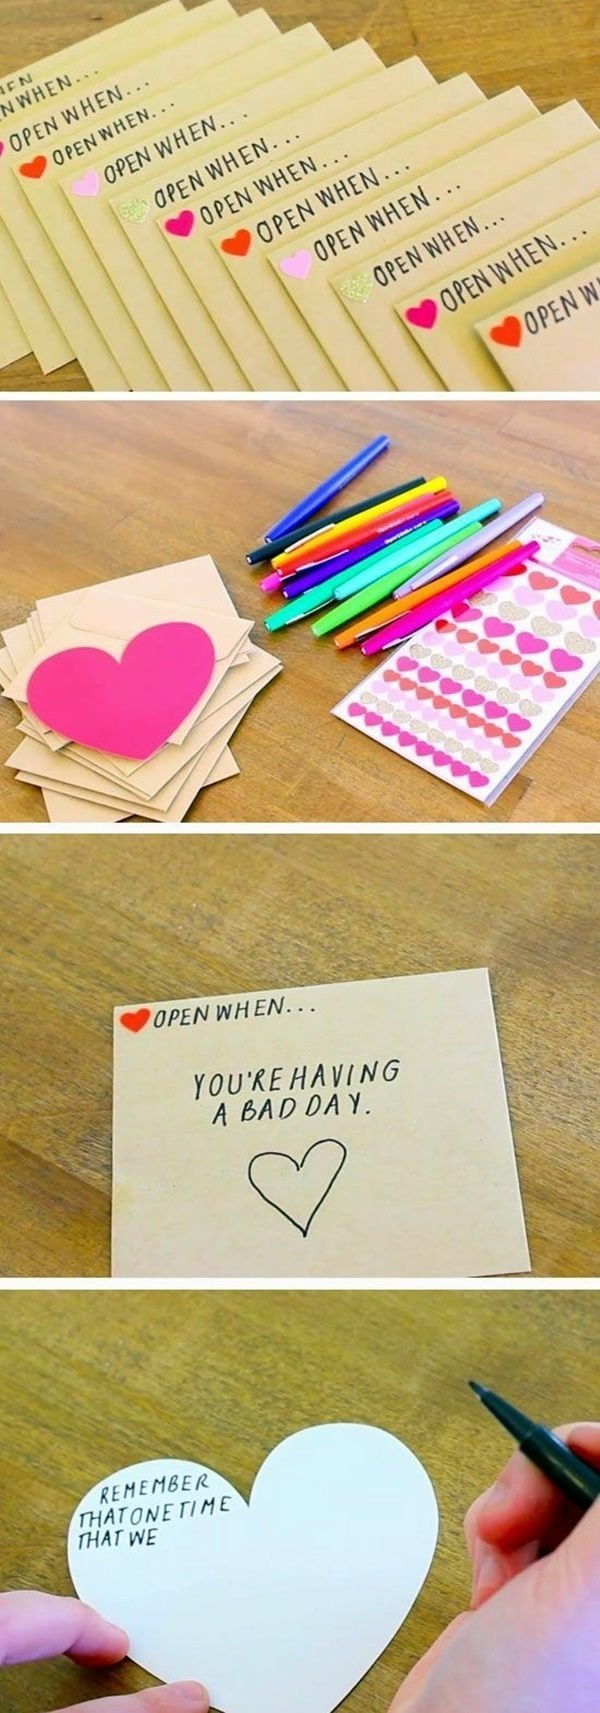 10 Trendy Cute Homemade Valentines Day Ideas For Your Boyfriend 101 homemade valentines day ideas for him thatre really cute 4